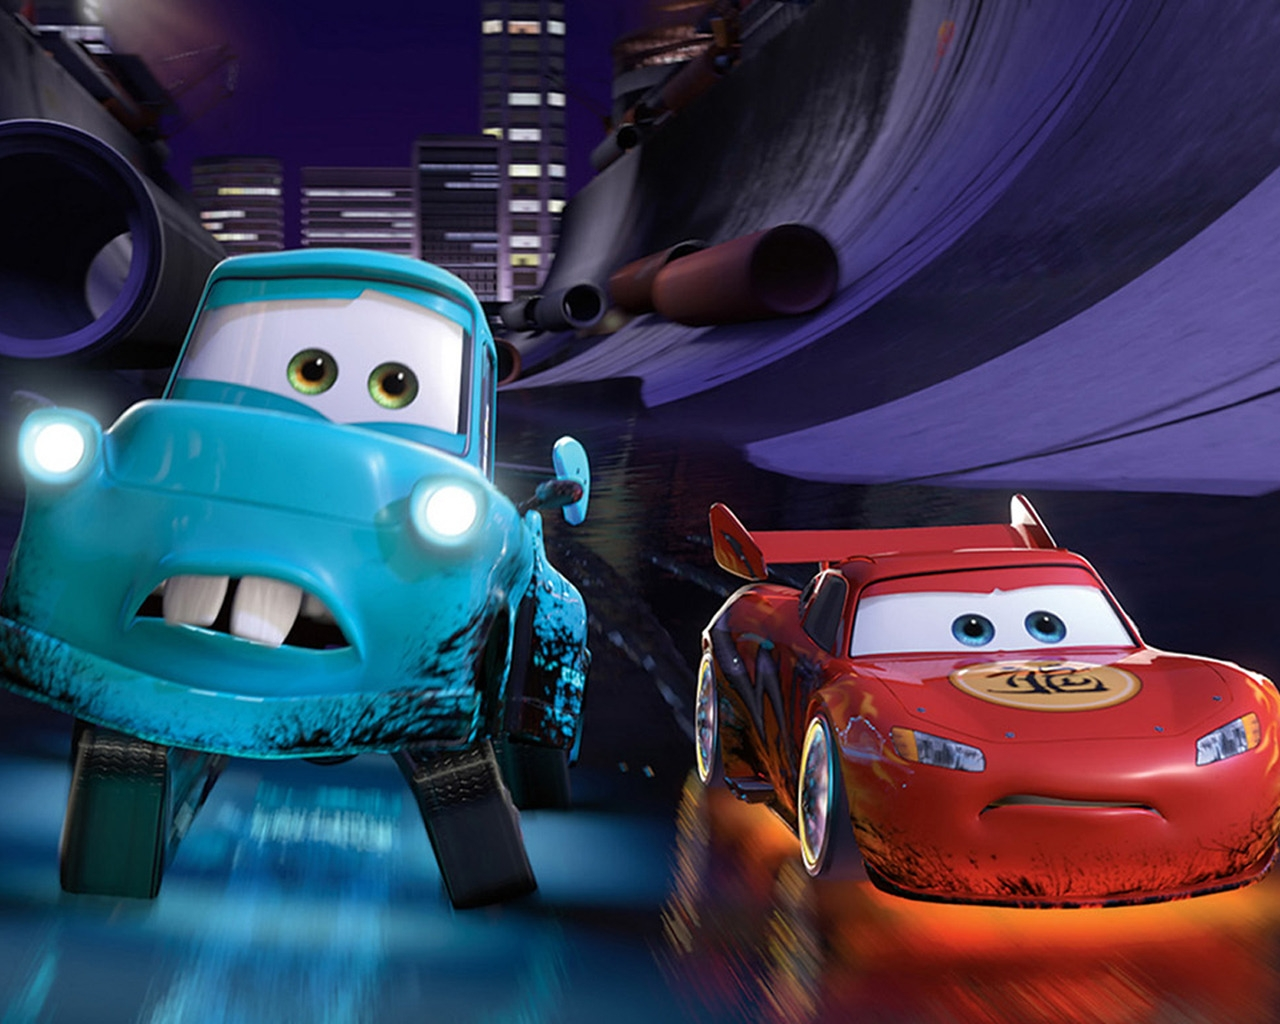 Cars 2 Lightning McQueen and Mater for 1280 x 1024 resolution